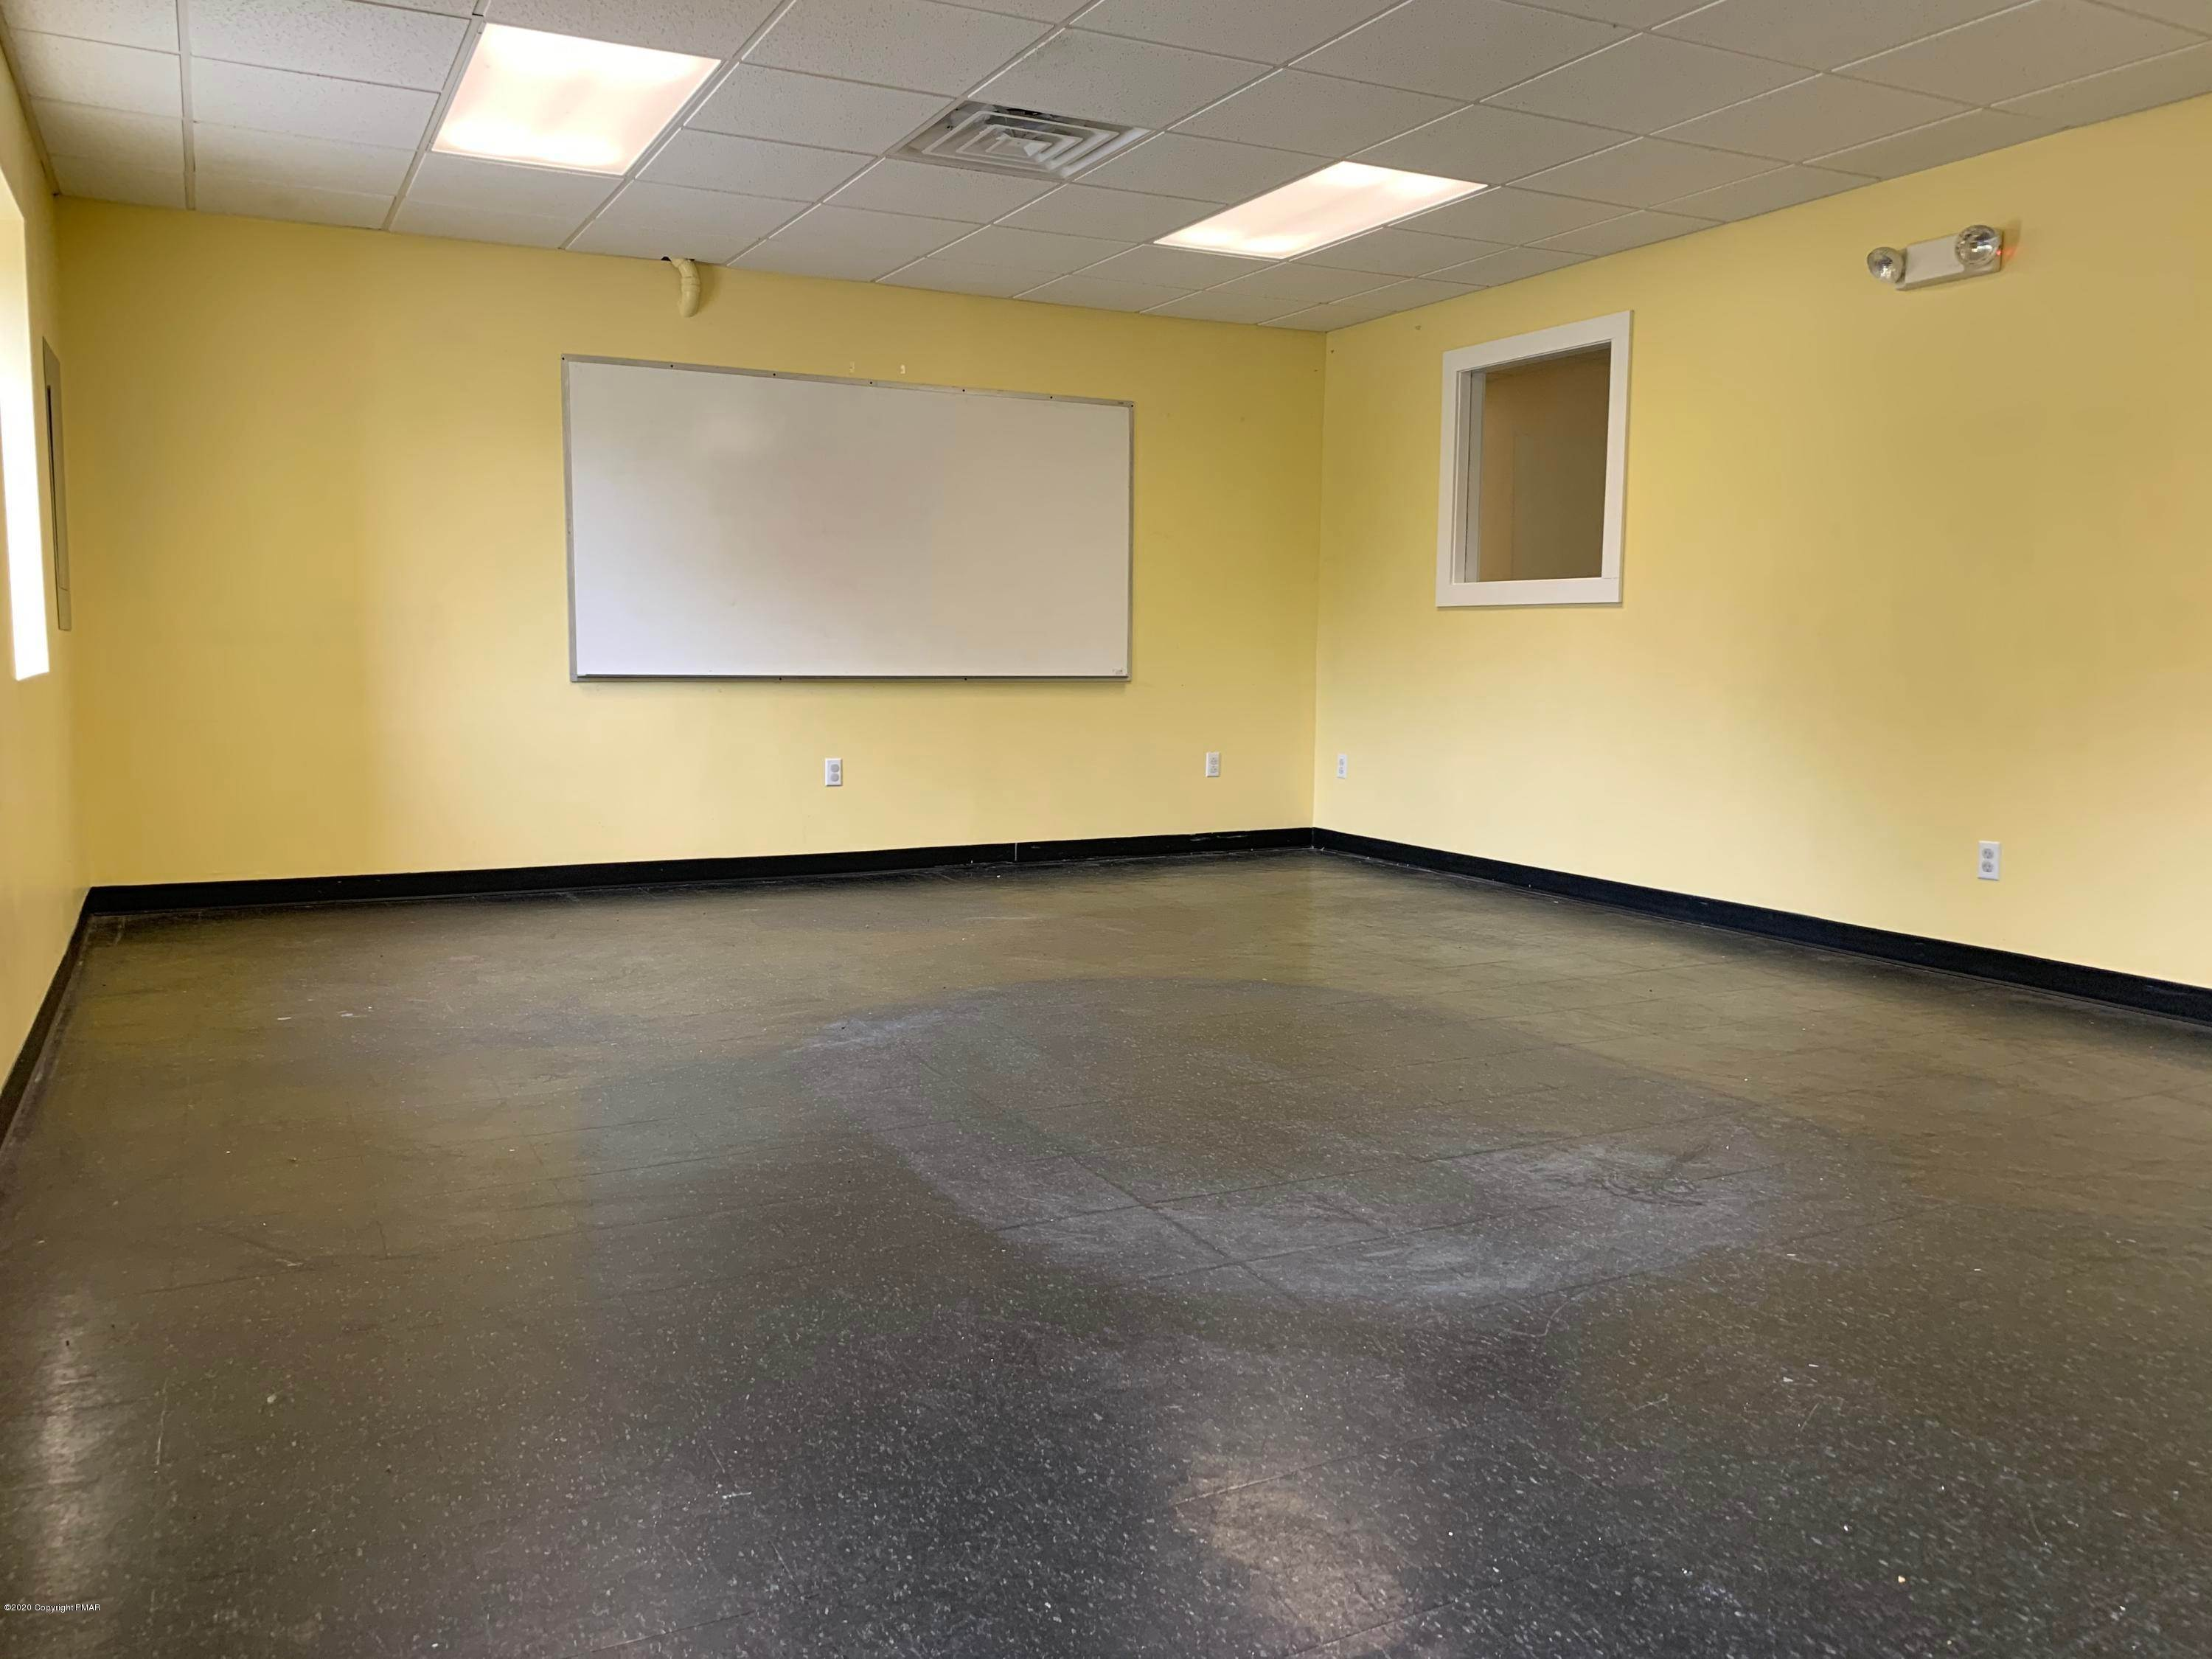 2. Commercial for Sale at 2936 Route 611, School-1 Tannersville, Pennsylvania 18372 United States